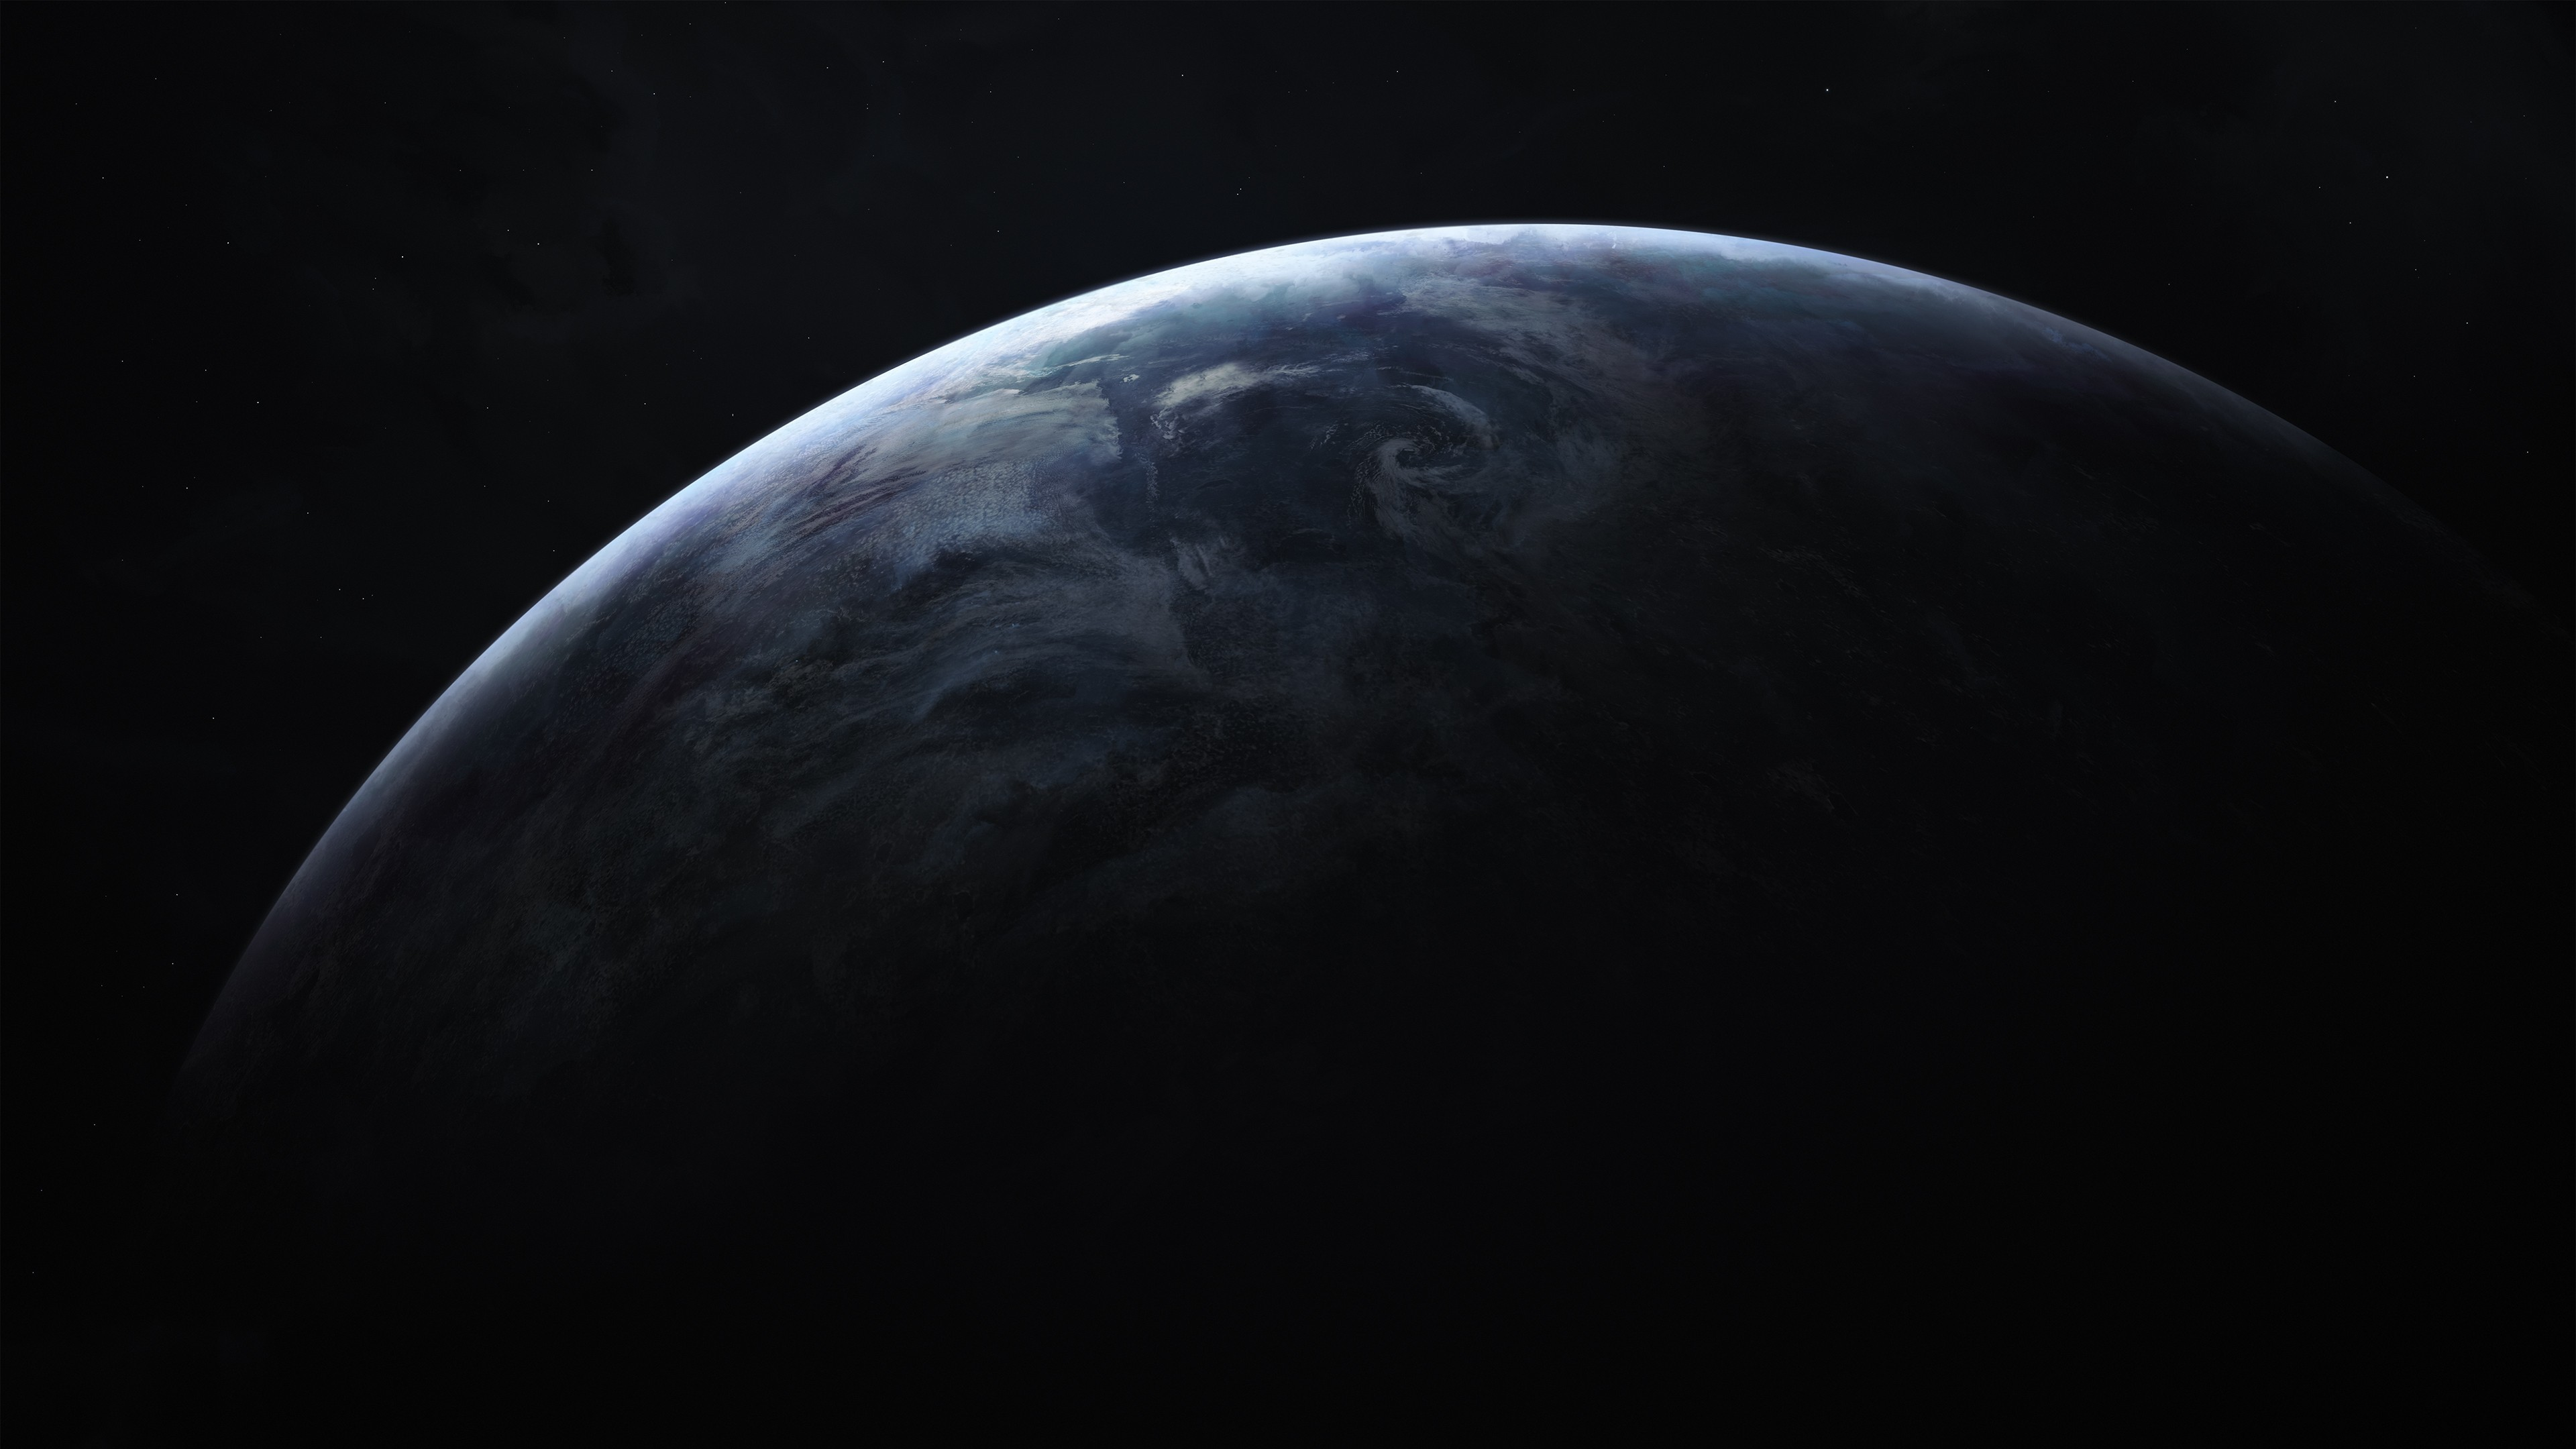 Space 4K Wallpaper (49+ images)